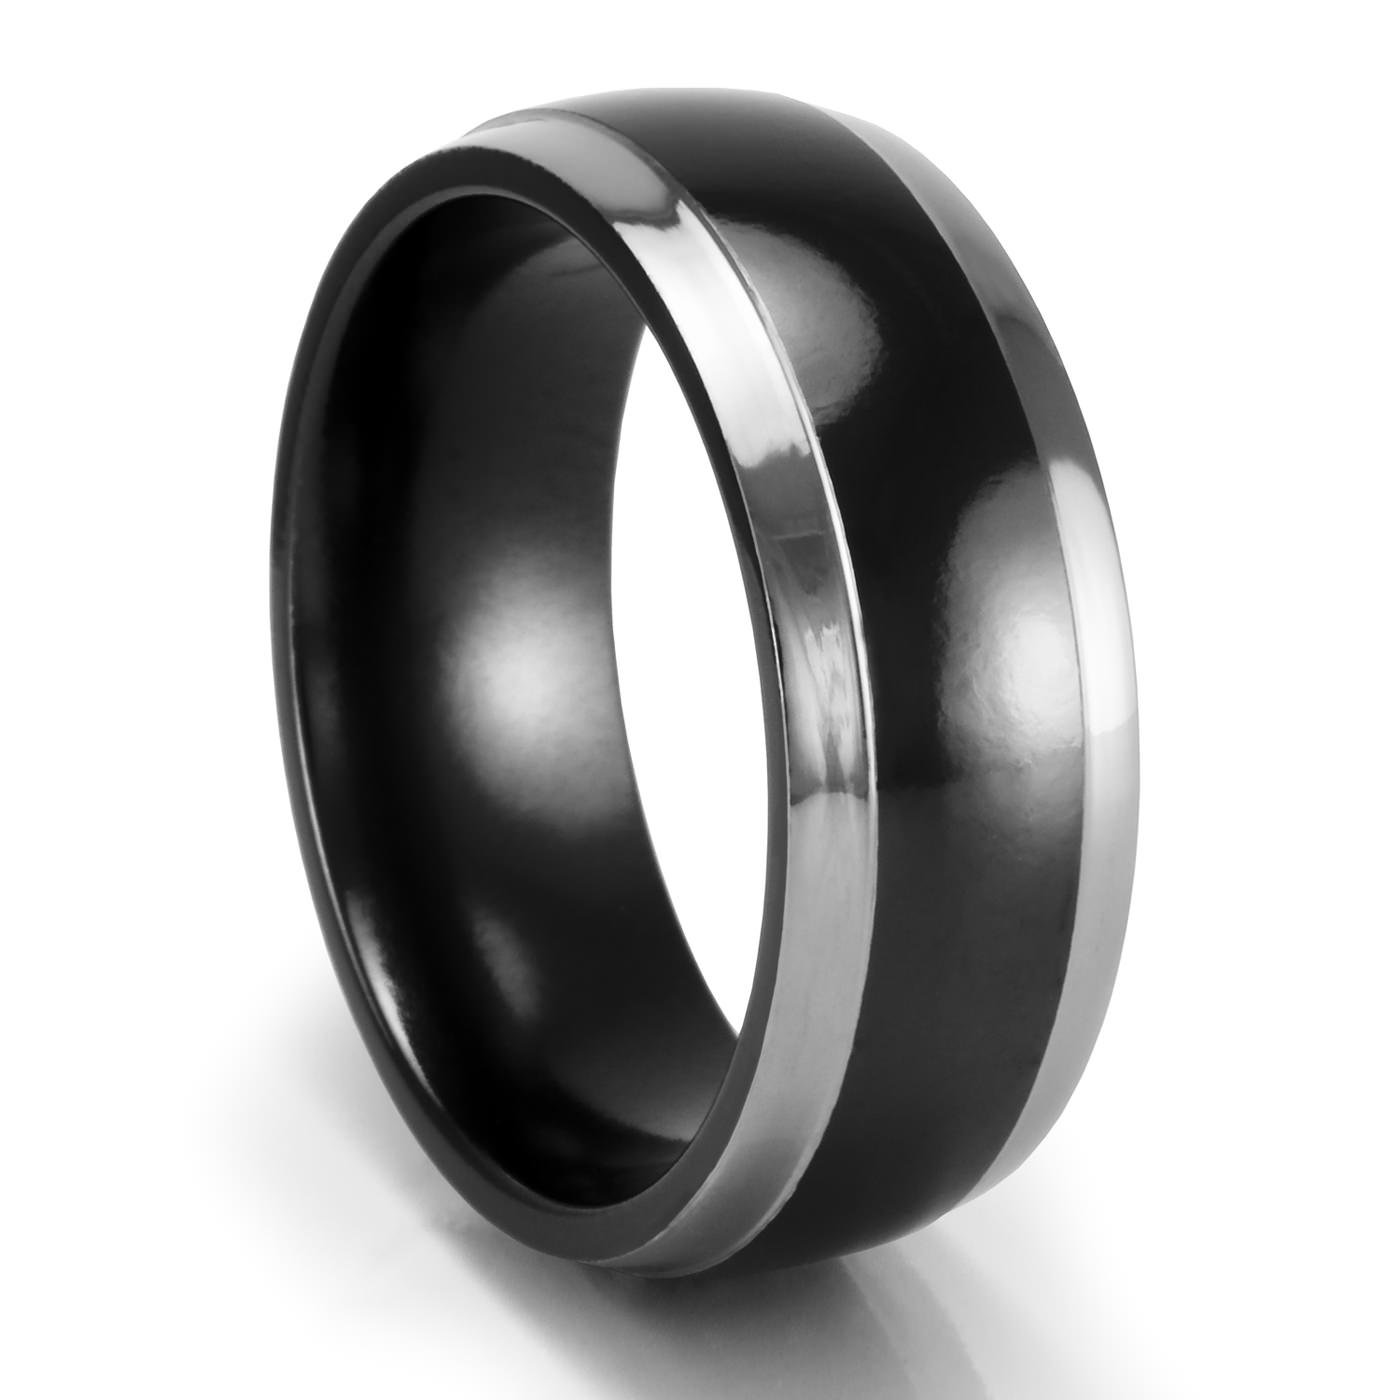 8mm dayton black & grey band – edward mirell – black titanium rings